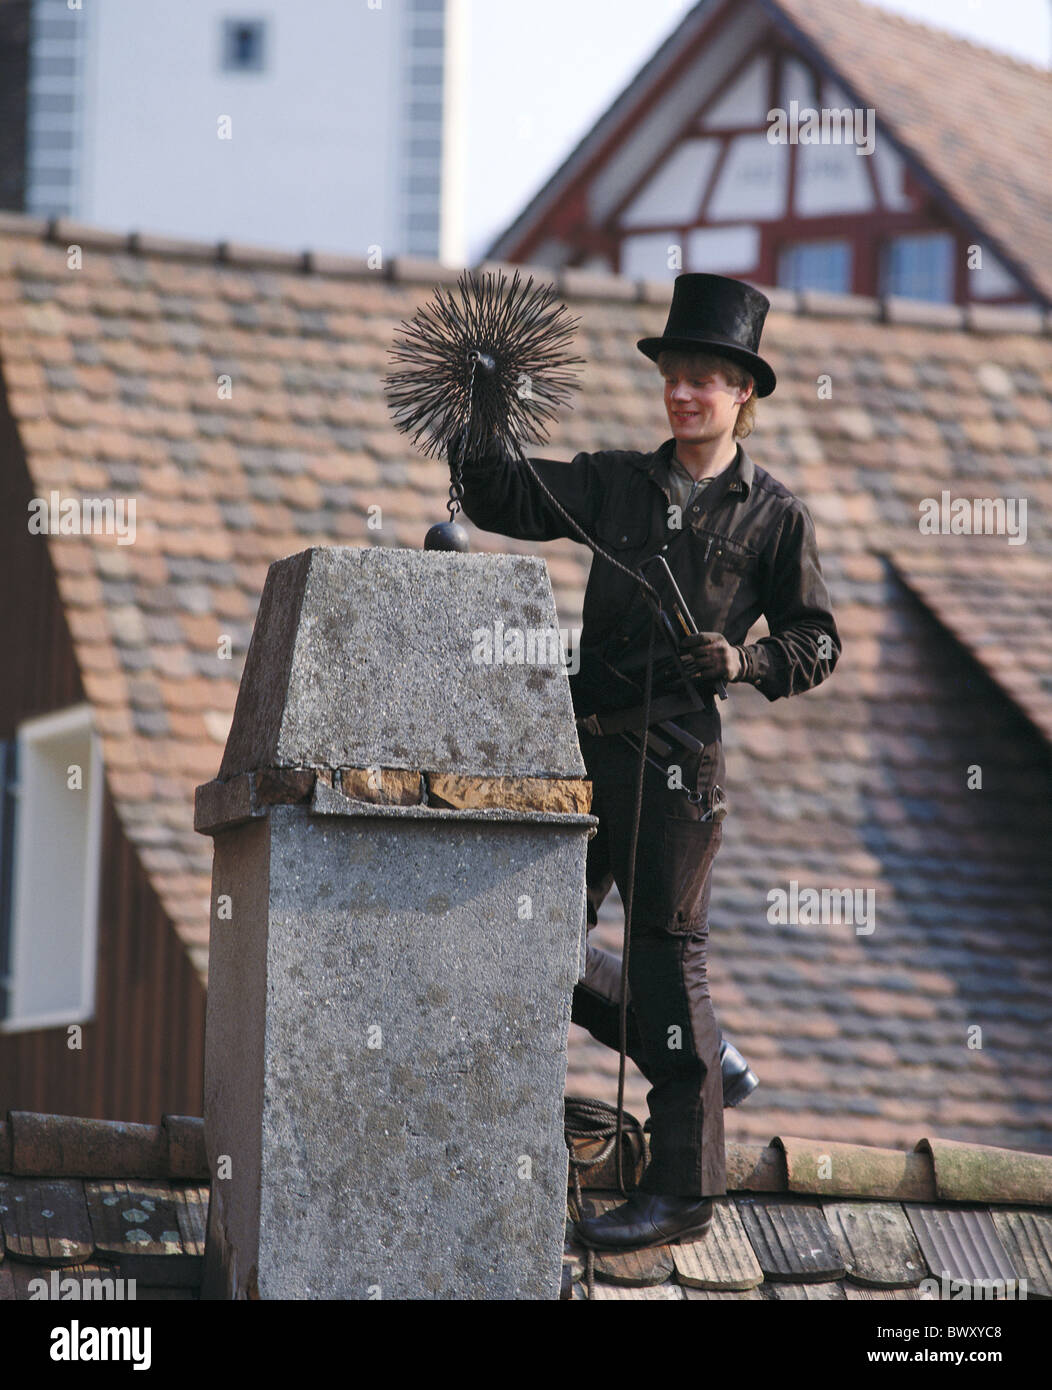 occupations professions roofs device appliance chimney fireplace chimney-sweep luck happiness symbol blac - Stock Image